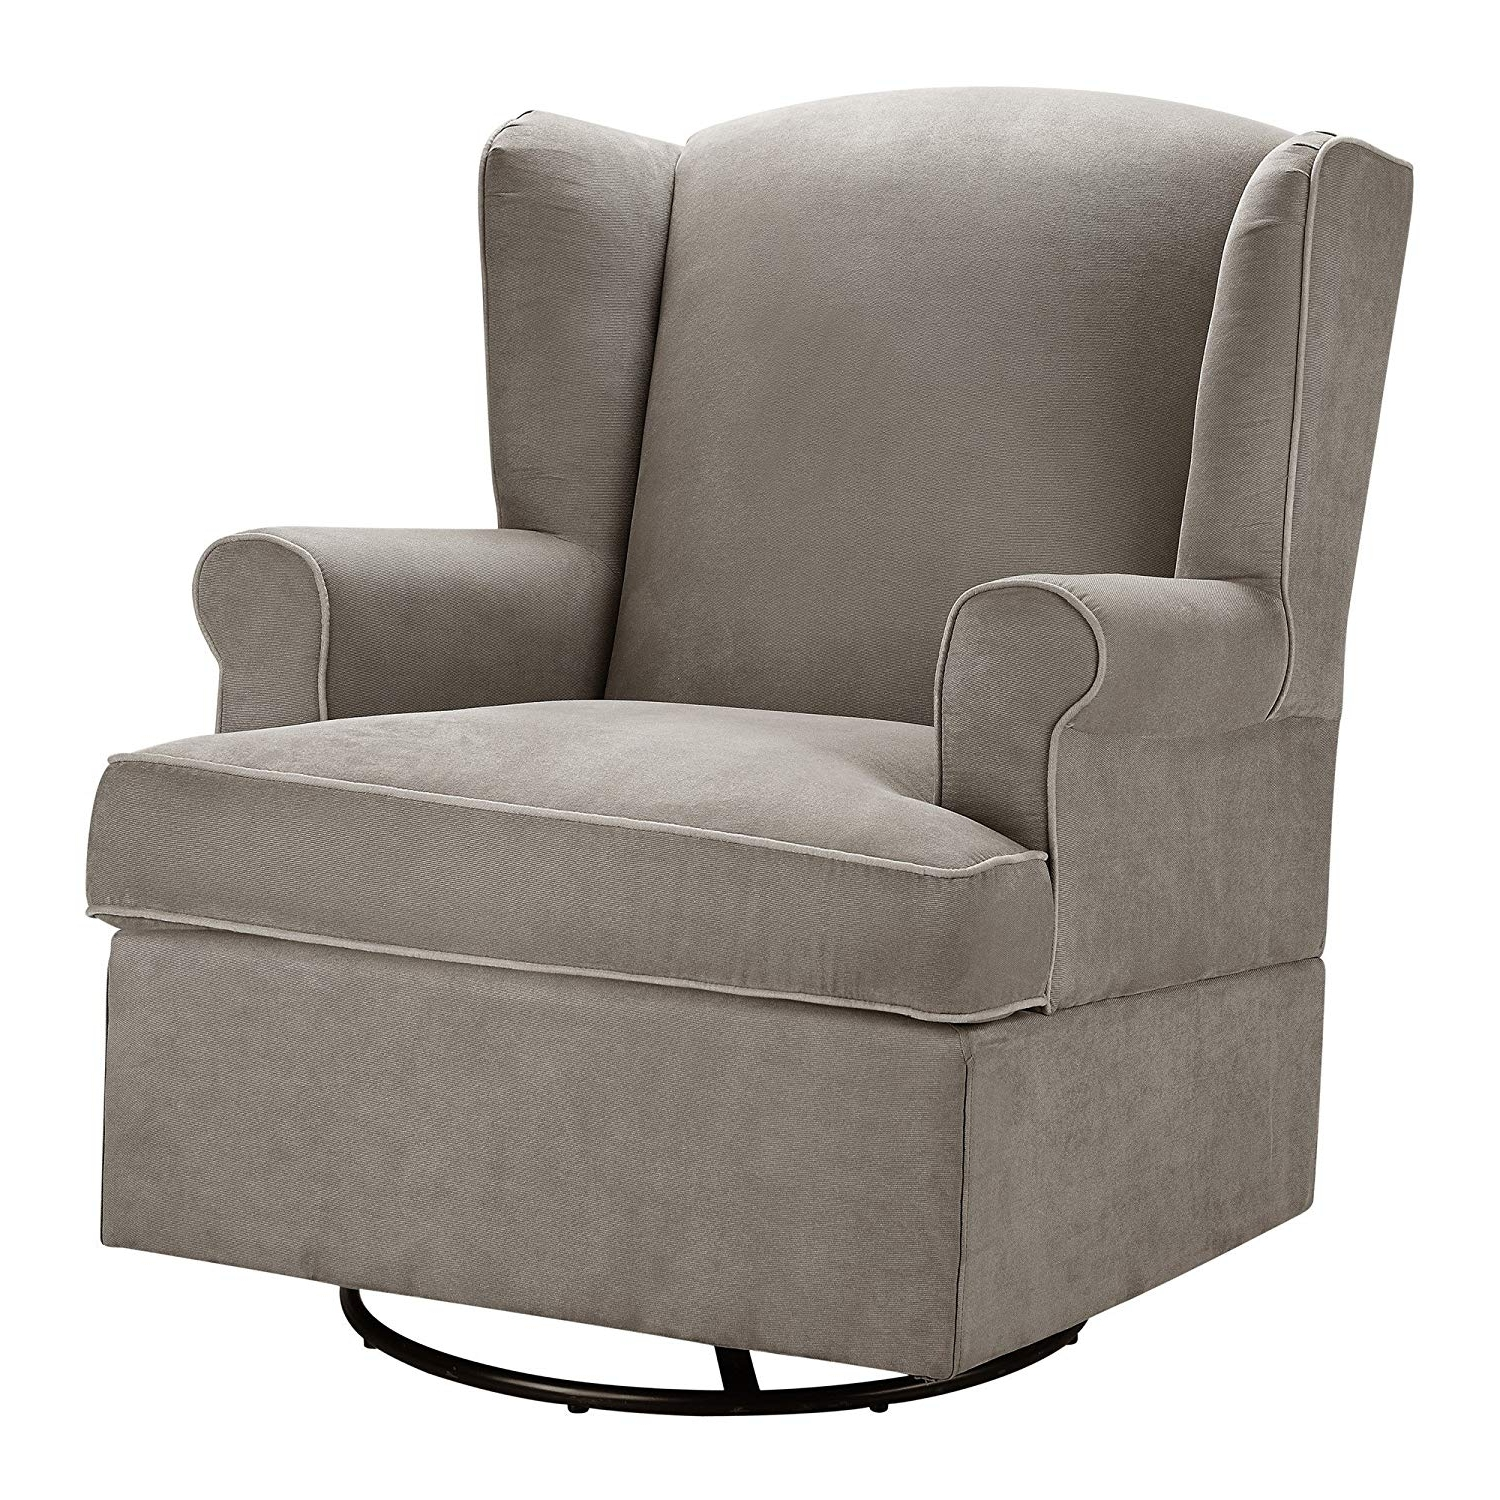 Amazon: Baby Relax Swivel Glider, Dark Taupe: Baby For Current Swivel Rocking Chairs (View 2 of 15)